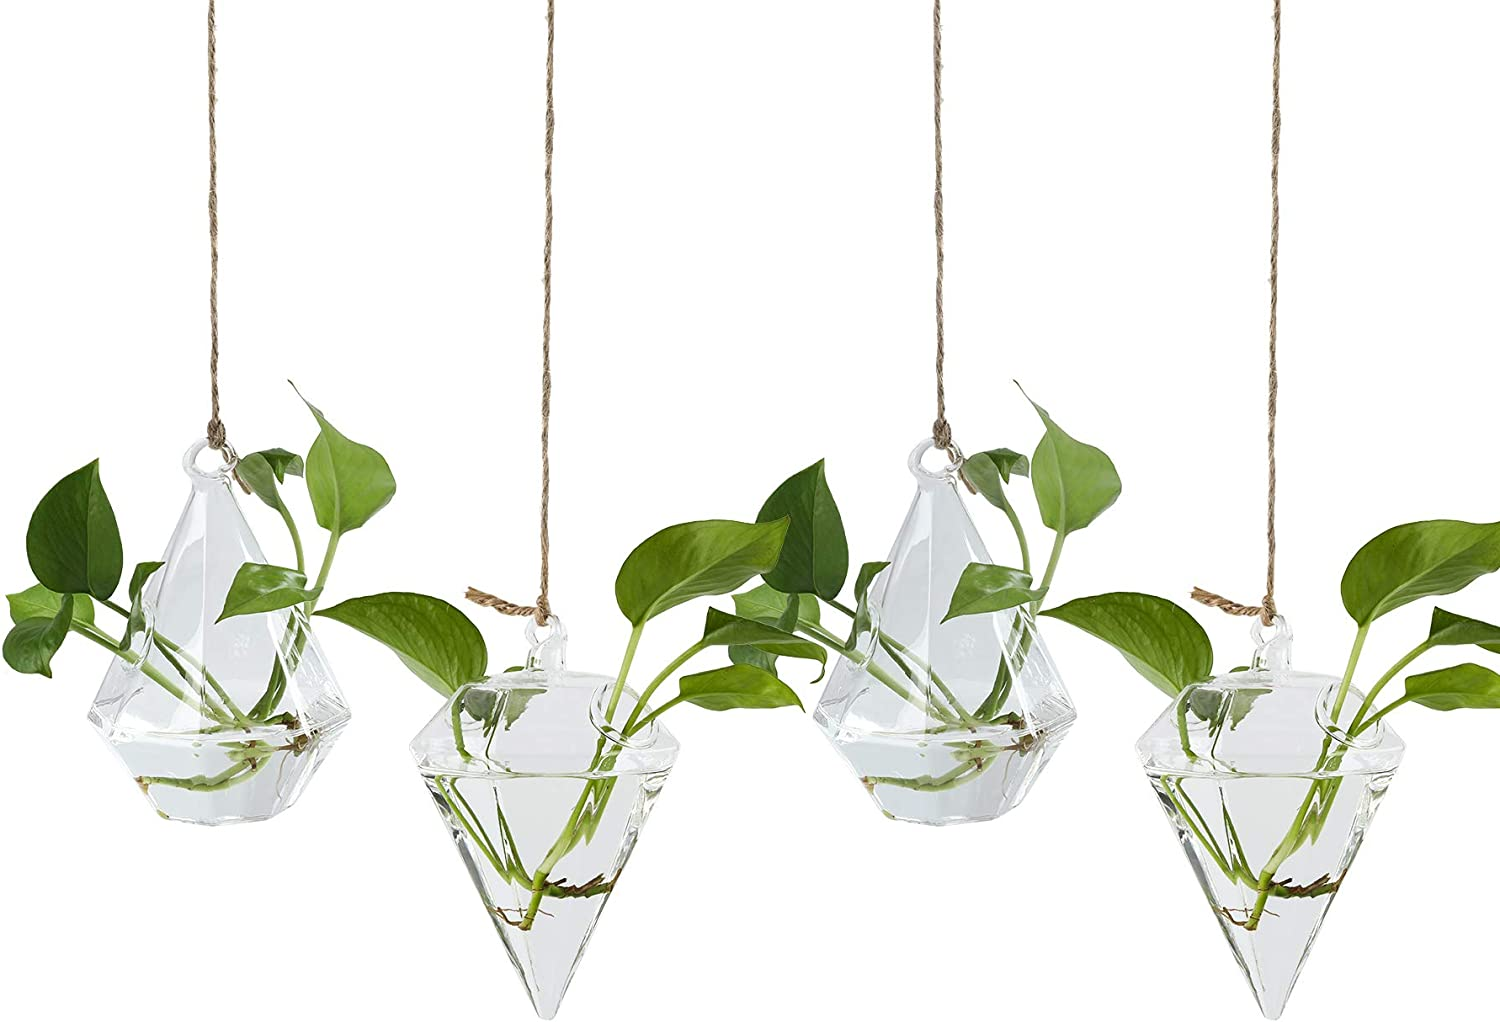 TQVAI 4 Pack Hanging Glass Globe Diamond Air Planter Terrarium Vase with 39 inch Sling (Not Included The Plants)